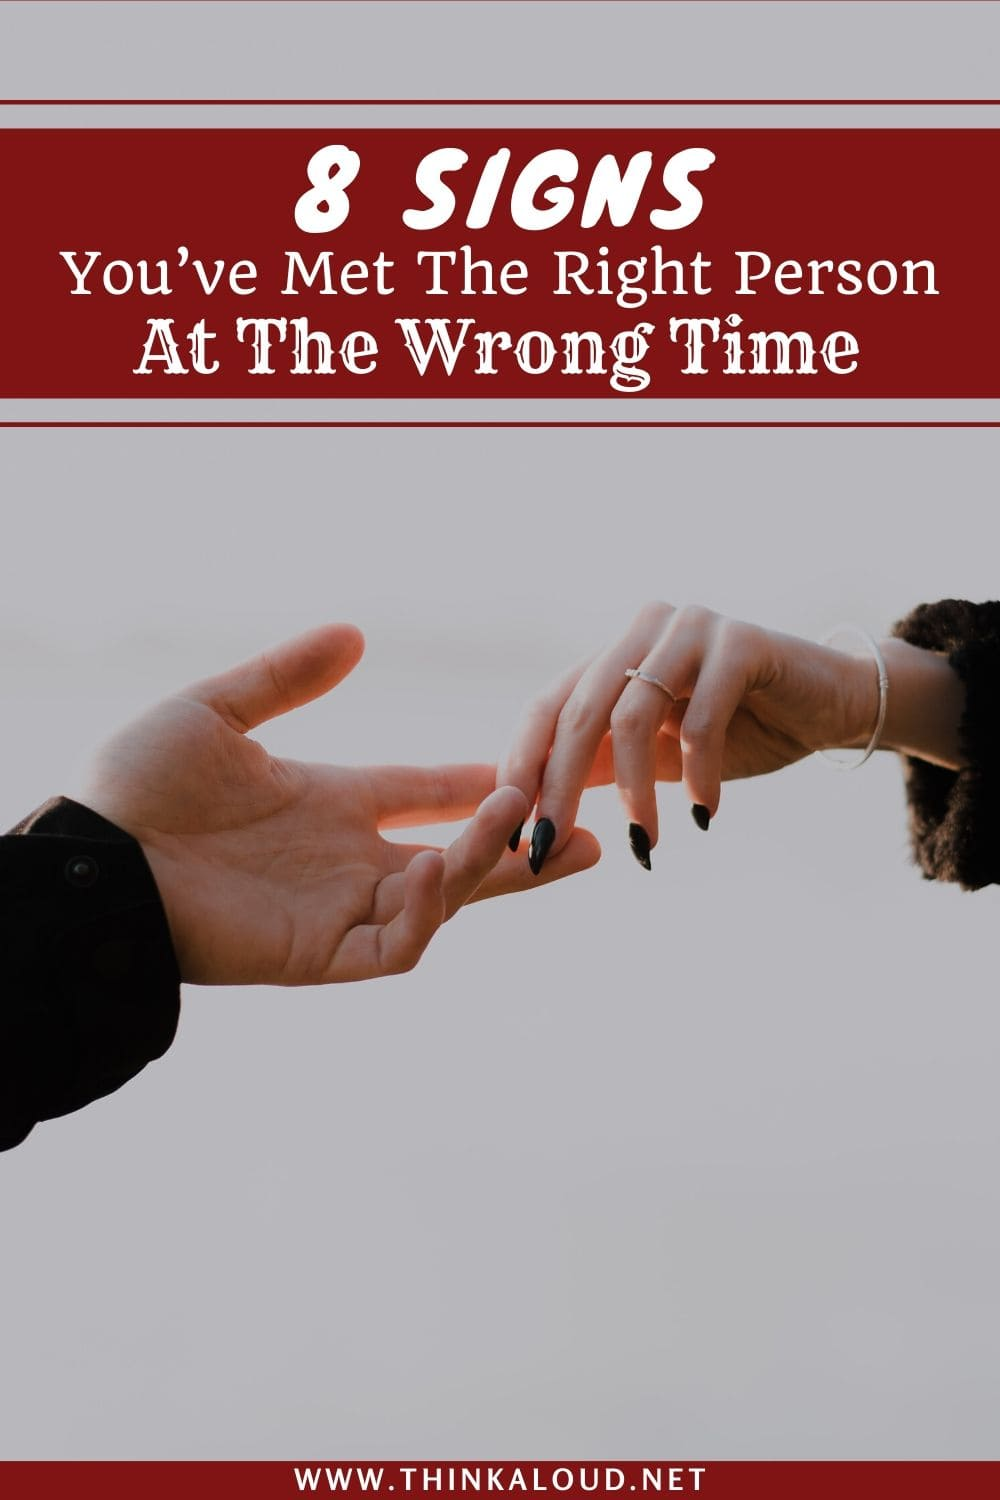 8 Signs You've Met The Right Person At The Wrong Time